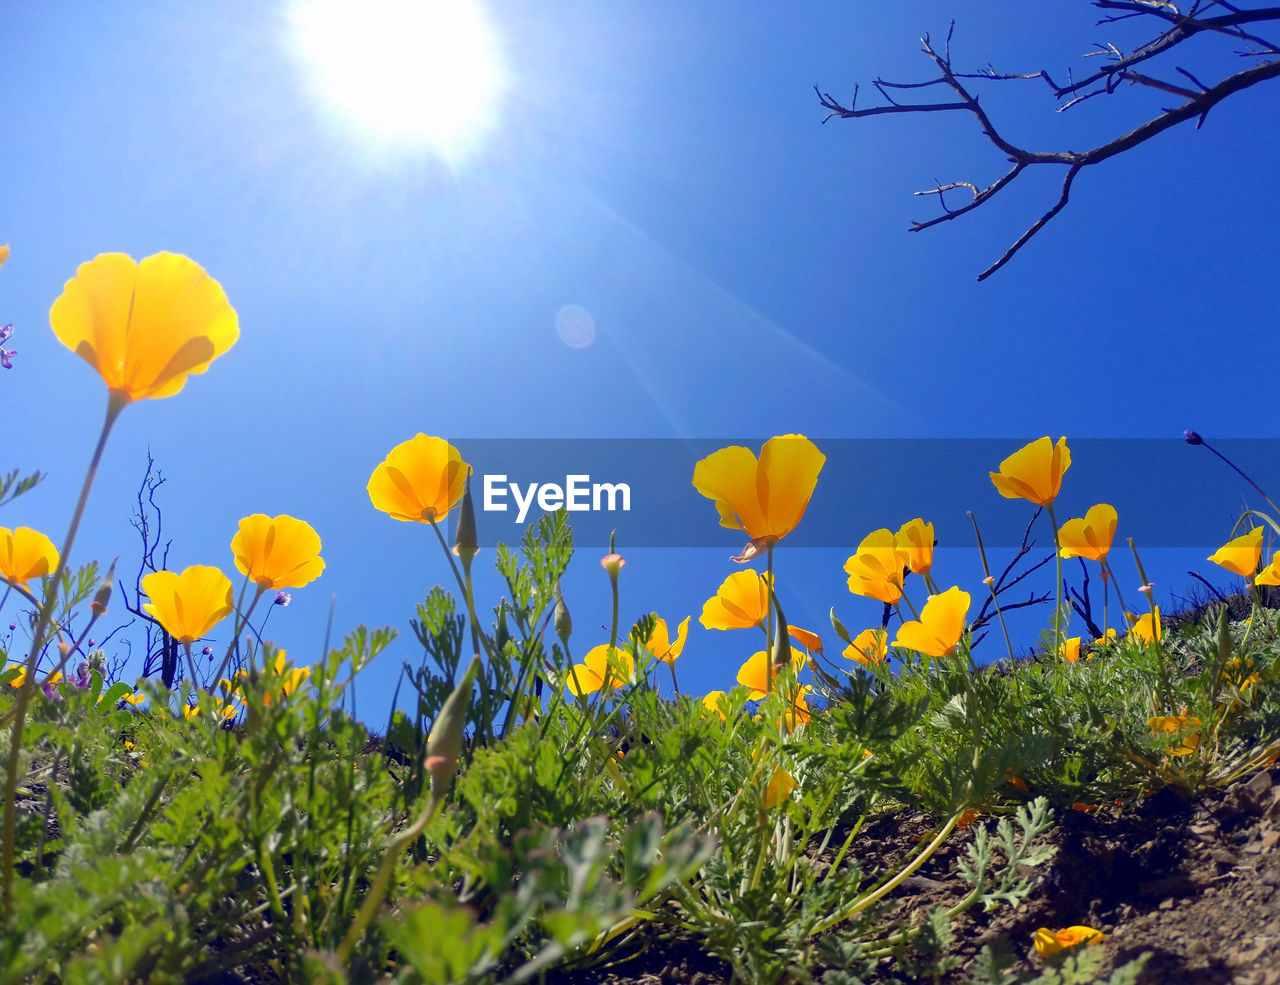 flower, nature, growth, field, beauty in nature, plant, sun, yellow, lens flare, sunbeam, sunlight, freshness, sky, grass, day, bright, outdoors, tranquility, rural scene, no people, fragility, petal, meadow, tranquil scene, scenics, springtime, low angle view, blue, landscape, clear sky, summer, oilseed rape, blooming, cosmos flower, flower head, close-up, crocus